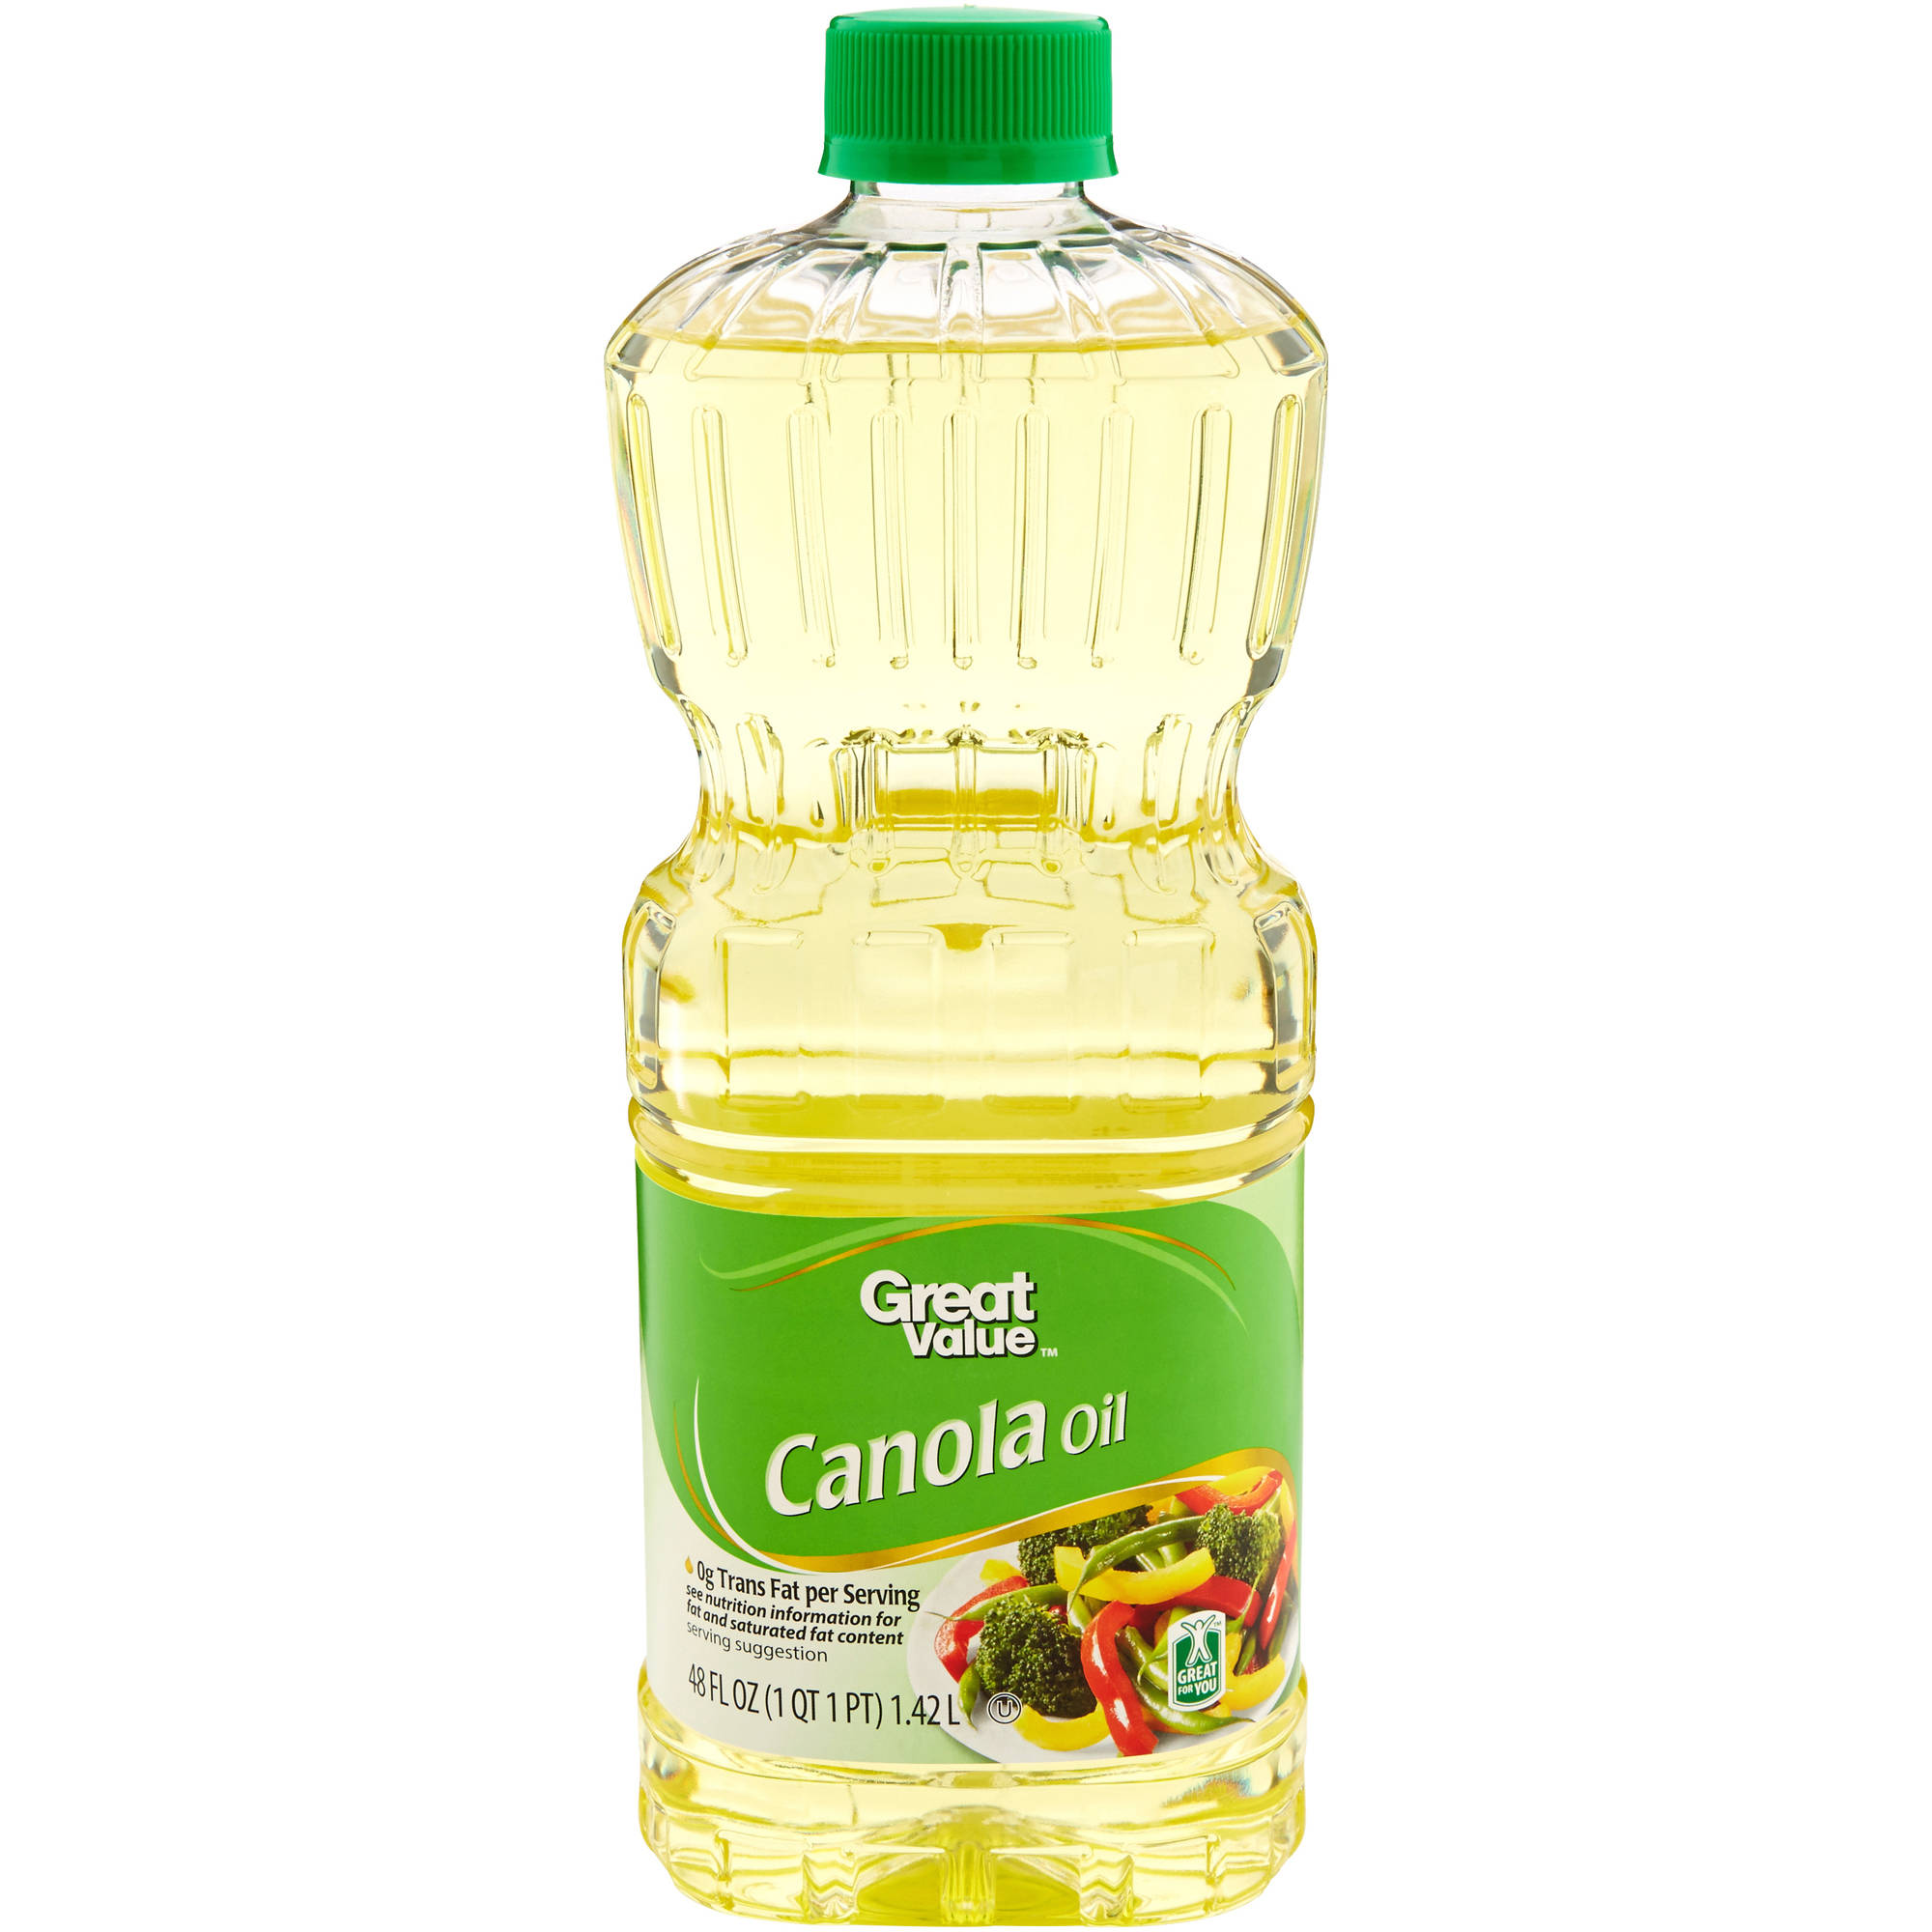 Great Value: Canola Oil, 48 Oz